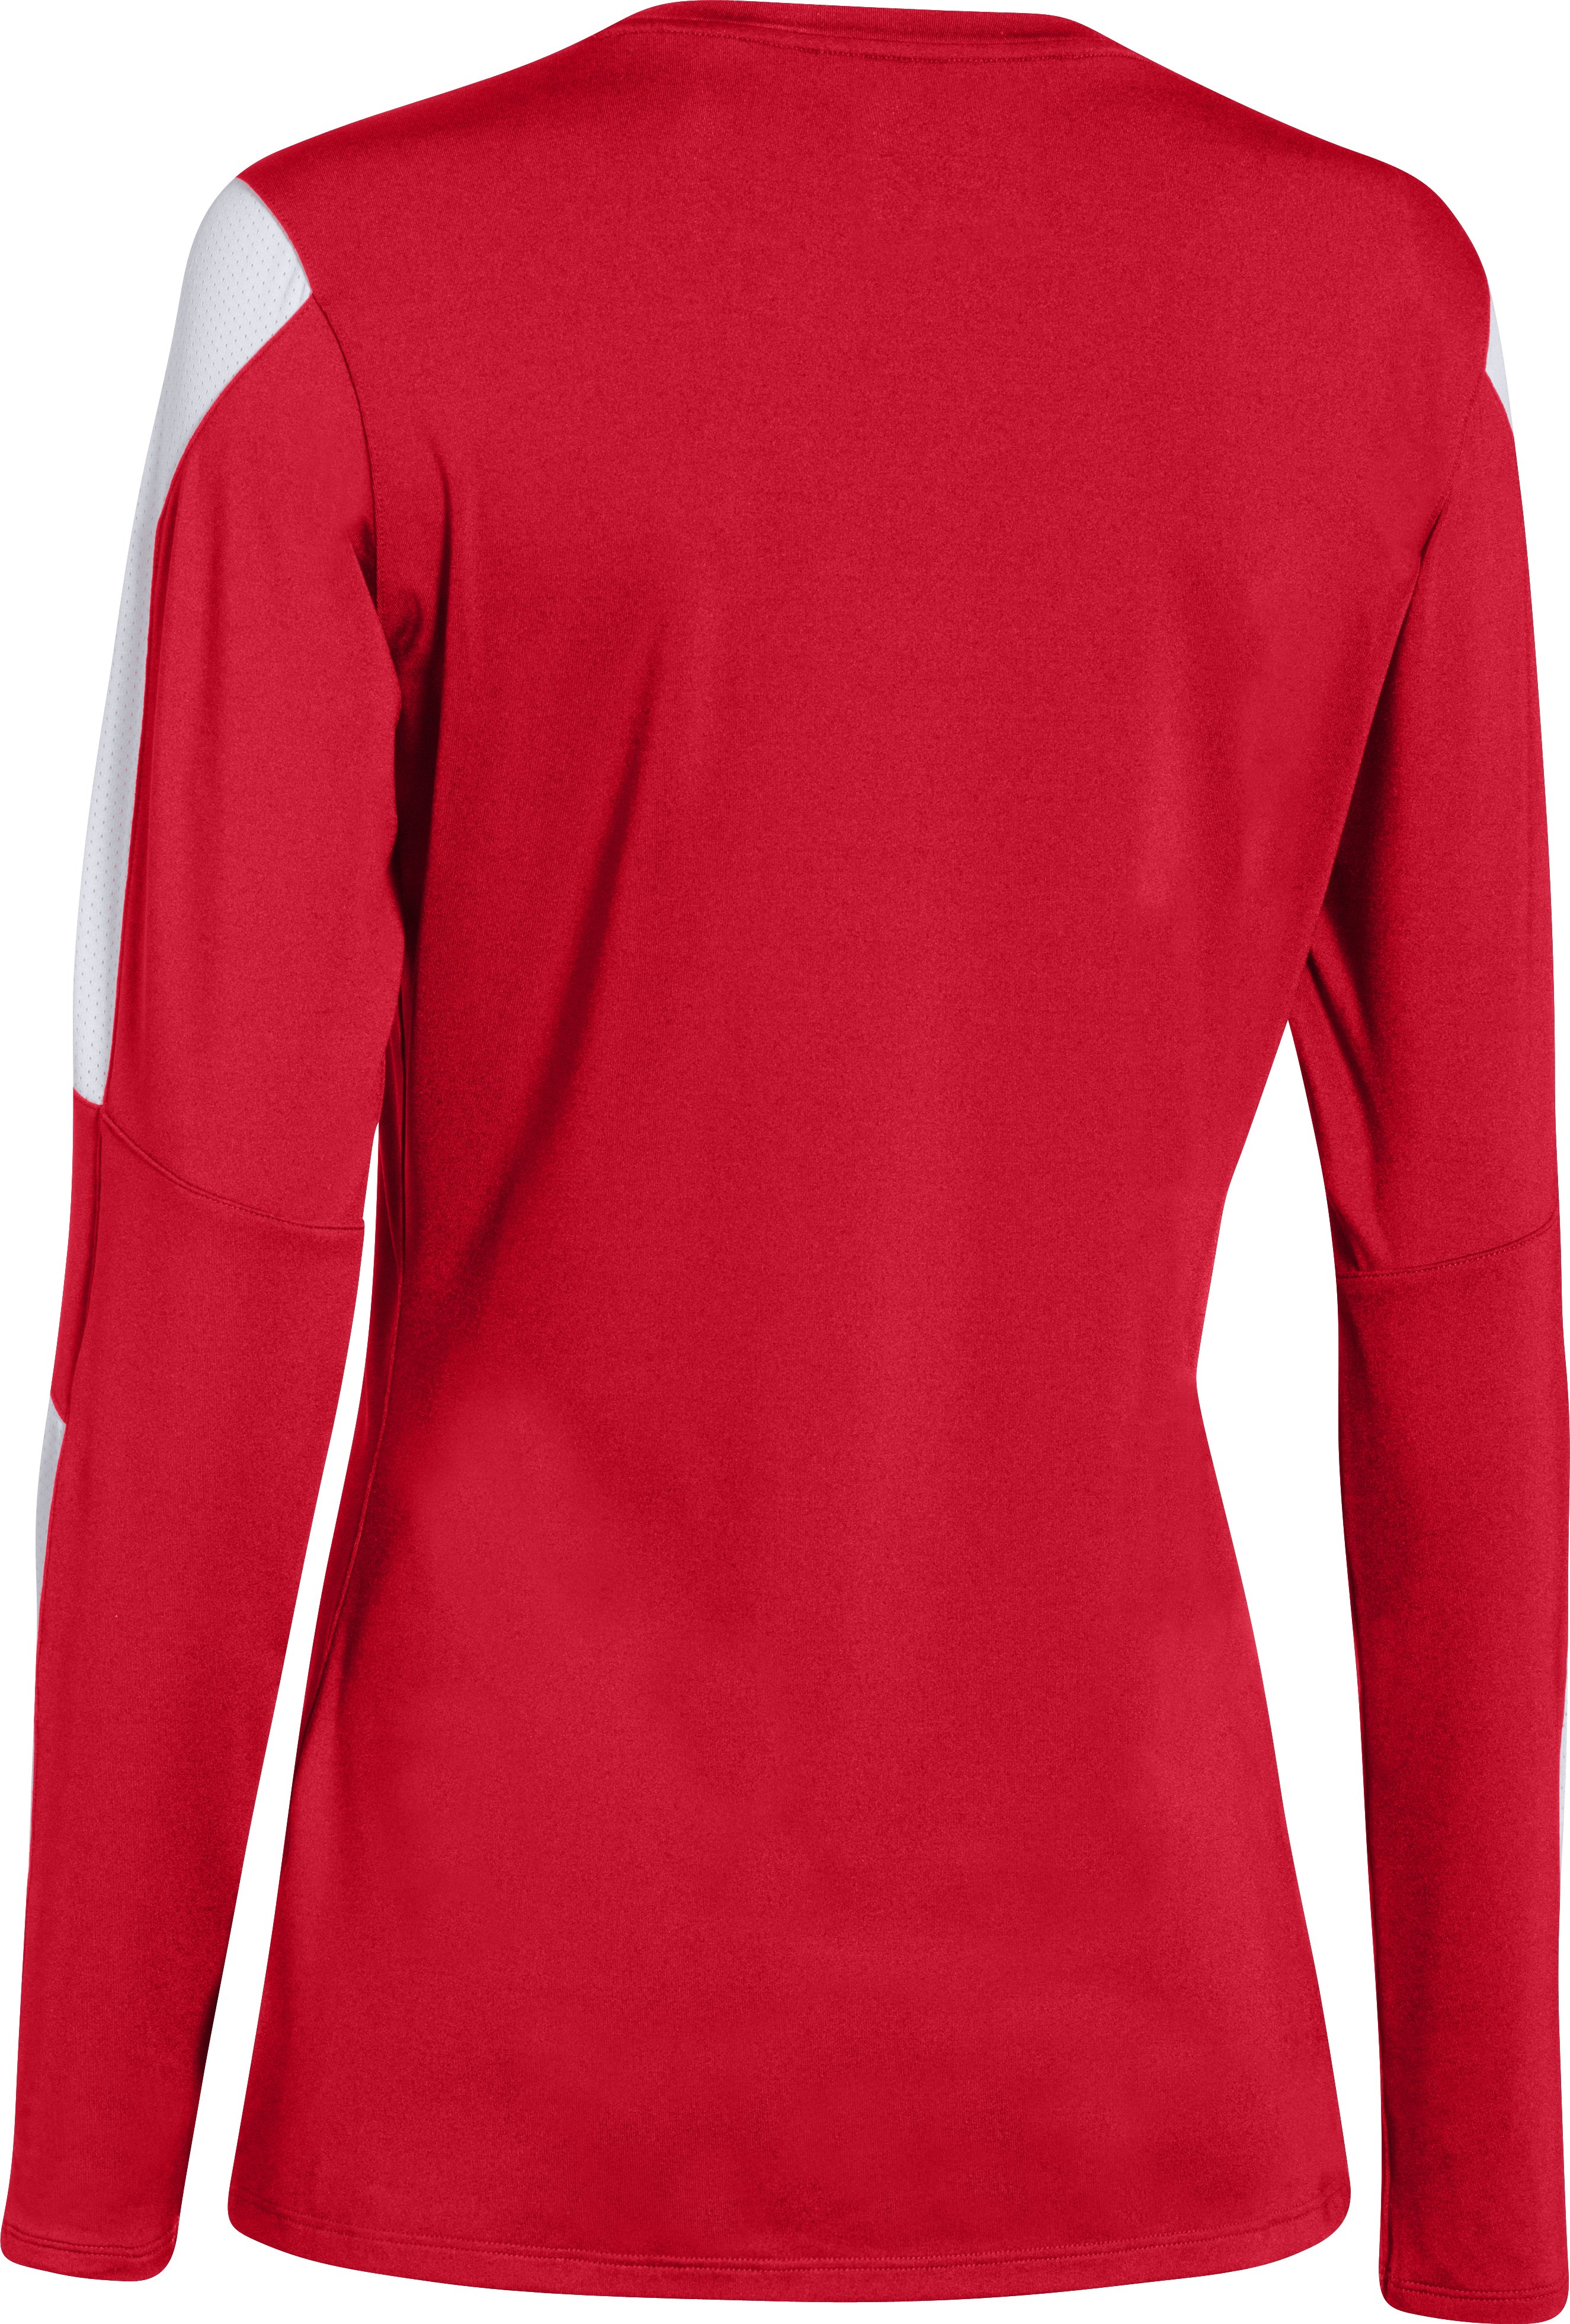 Women's UA Block Party Long Sleeve Jersey, Red, undefined